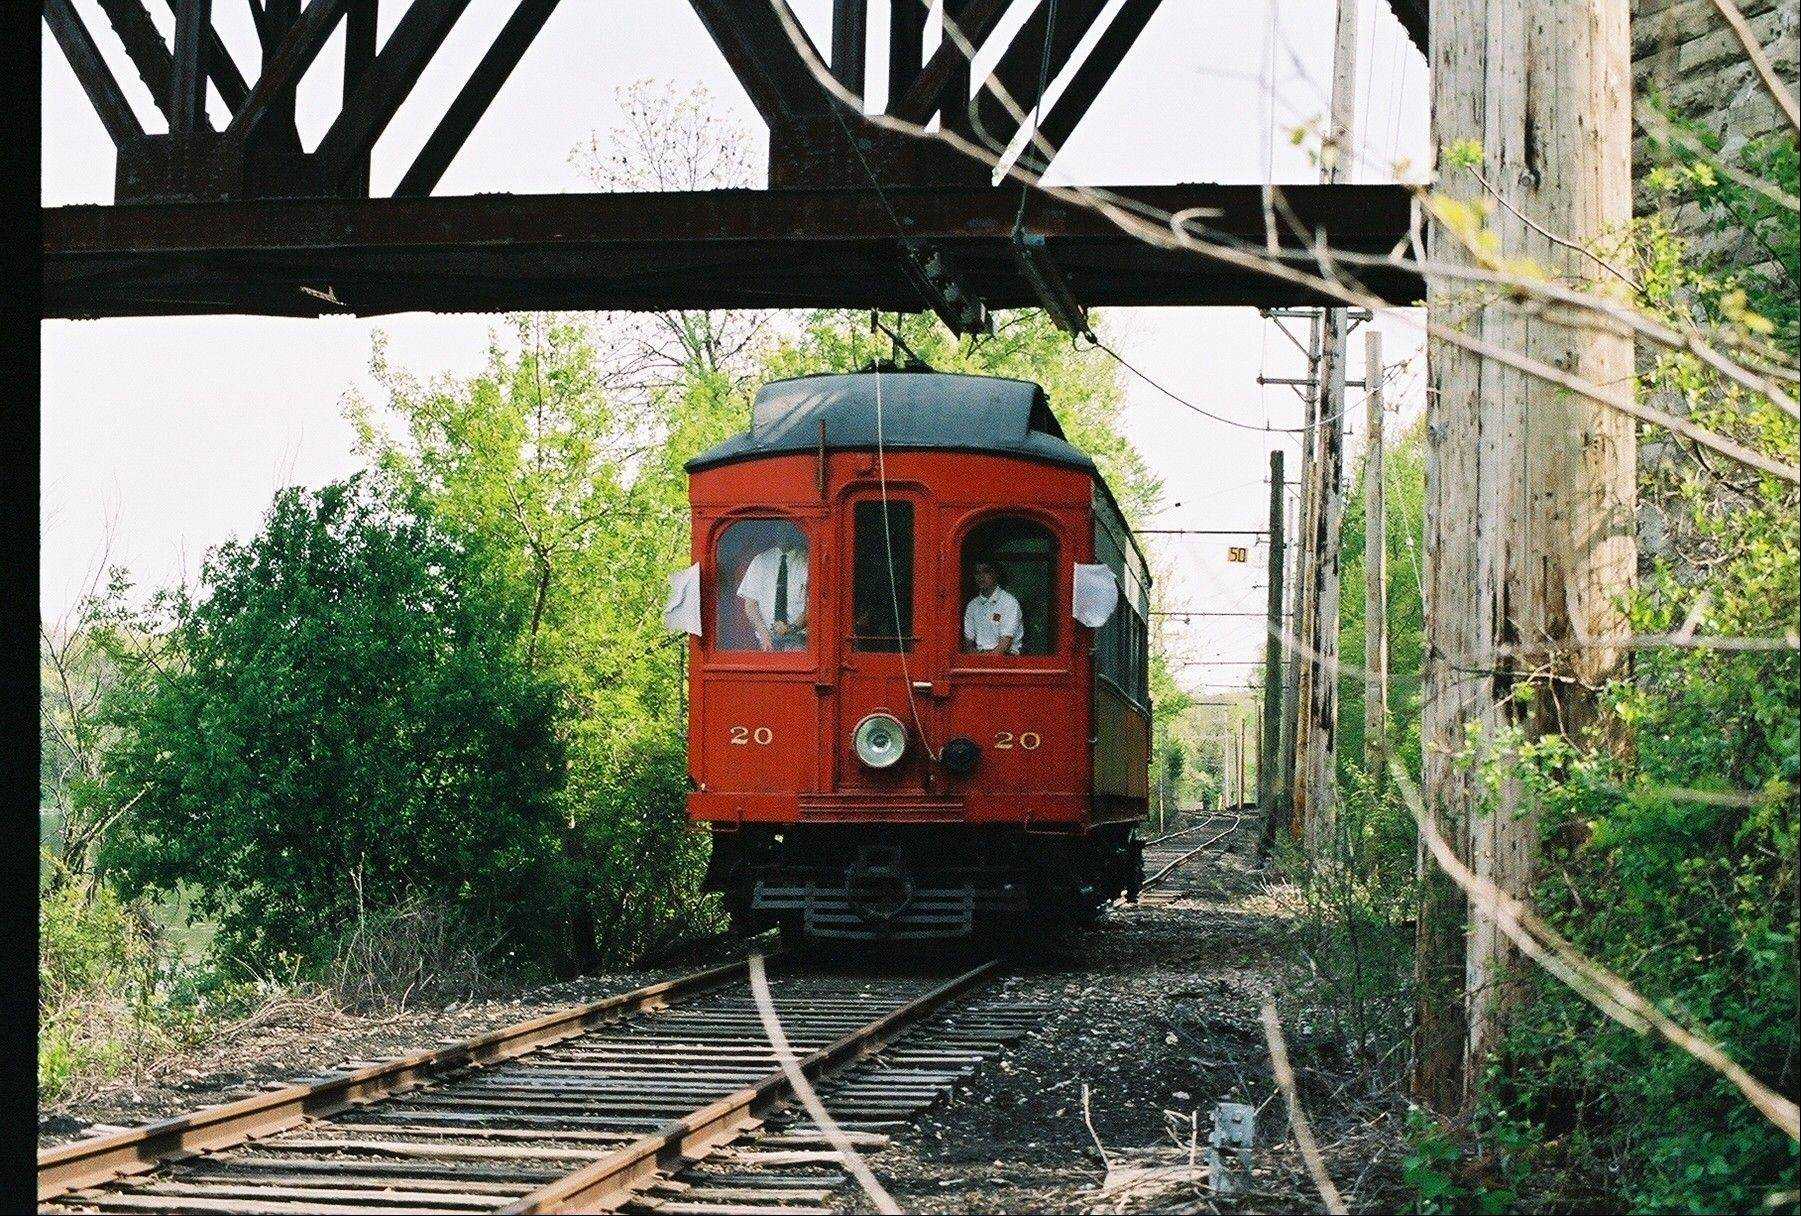 On Sunday, July 1, the Fox River Trolley Museum in South Elgin is throwing a birthday party for CA&E 20, the first car to operate at the museum in 1966. Ice cream and cake will be available to the first 150 riders.